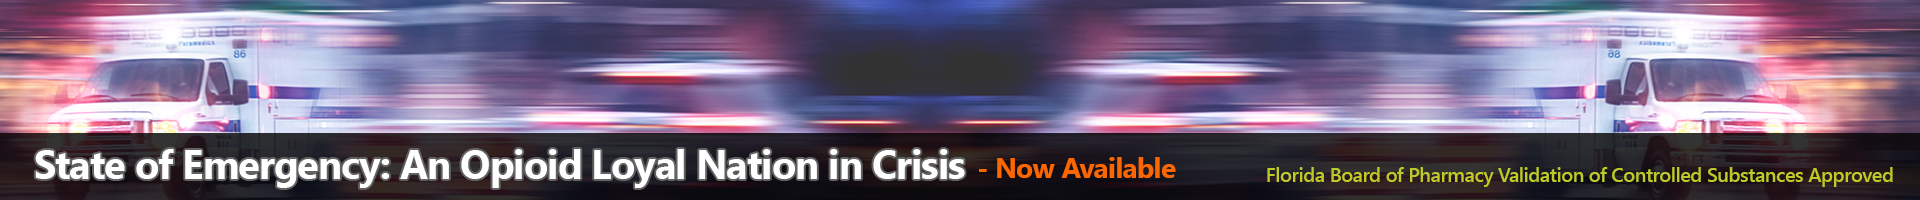 New FL Controlled Sub